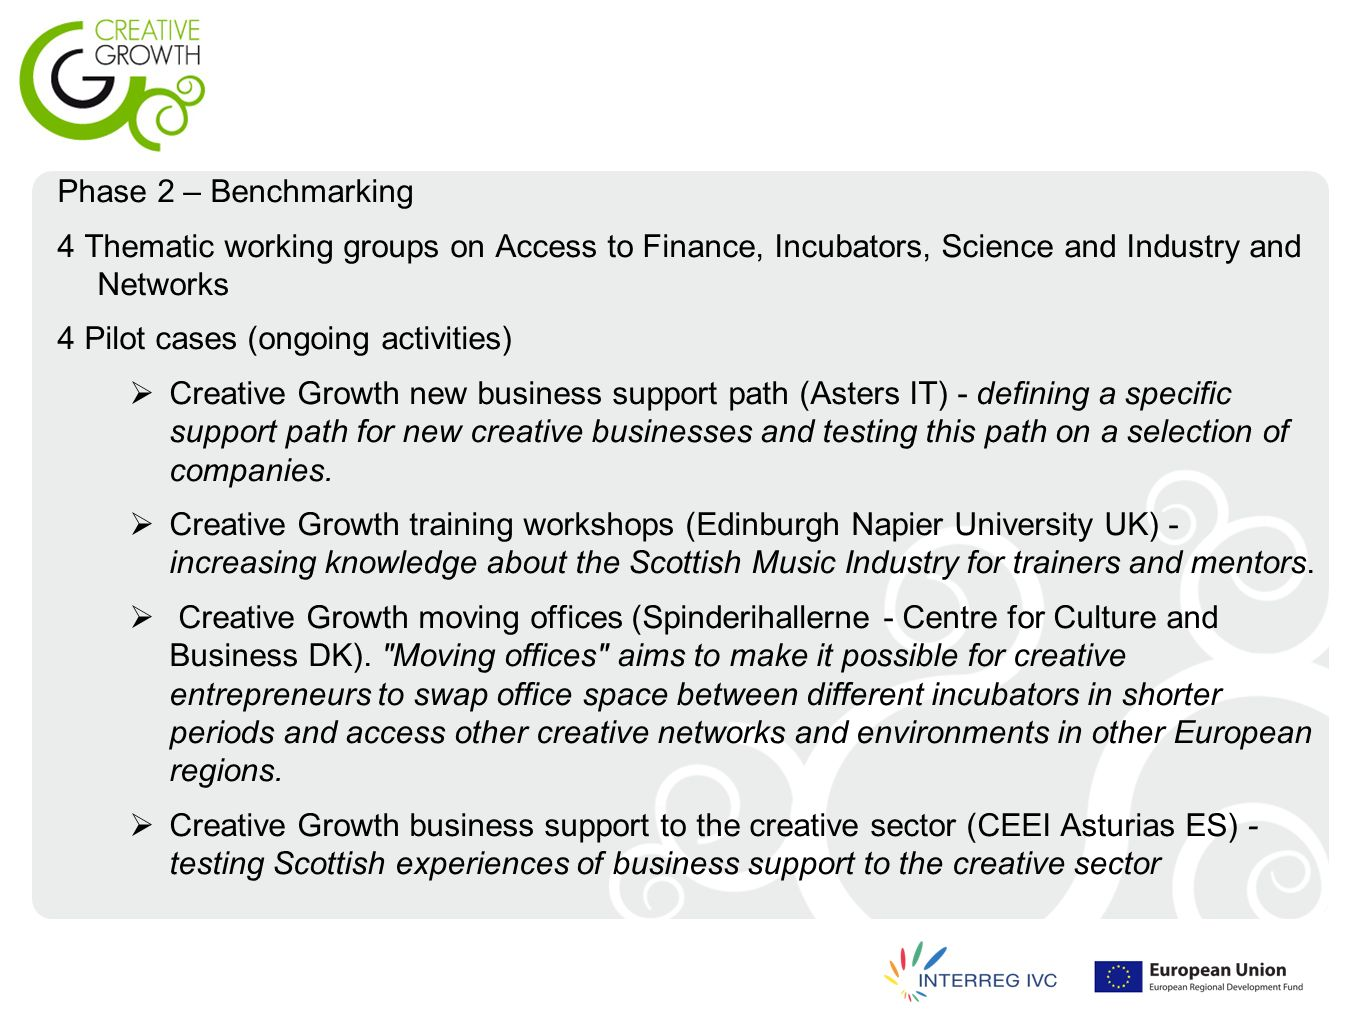 Phase 2 – Benchmarking 4 Thematic working groups on Access to Finance, Incubators, Science and Industry and Networks 4 Pilot cases (ongoing activities